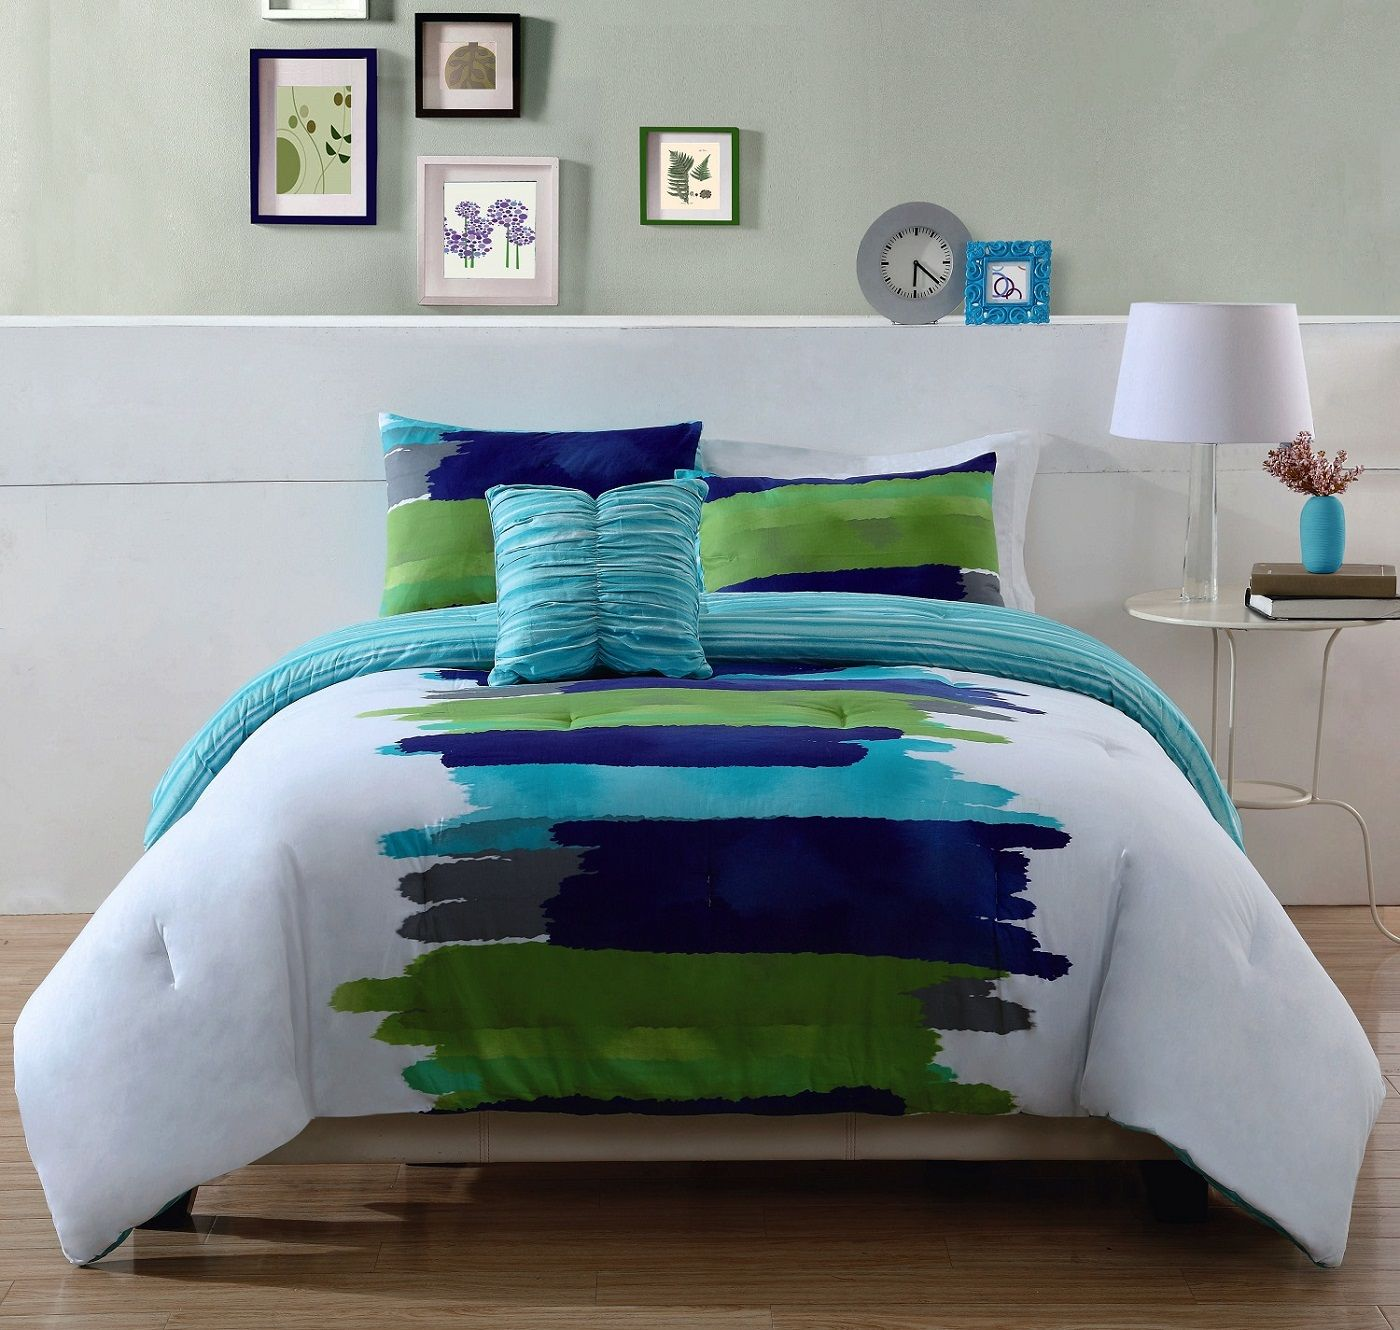 piece queen adelisa aqua green and blue bedding set comforter sets style ease with